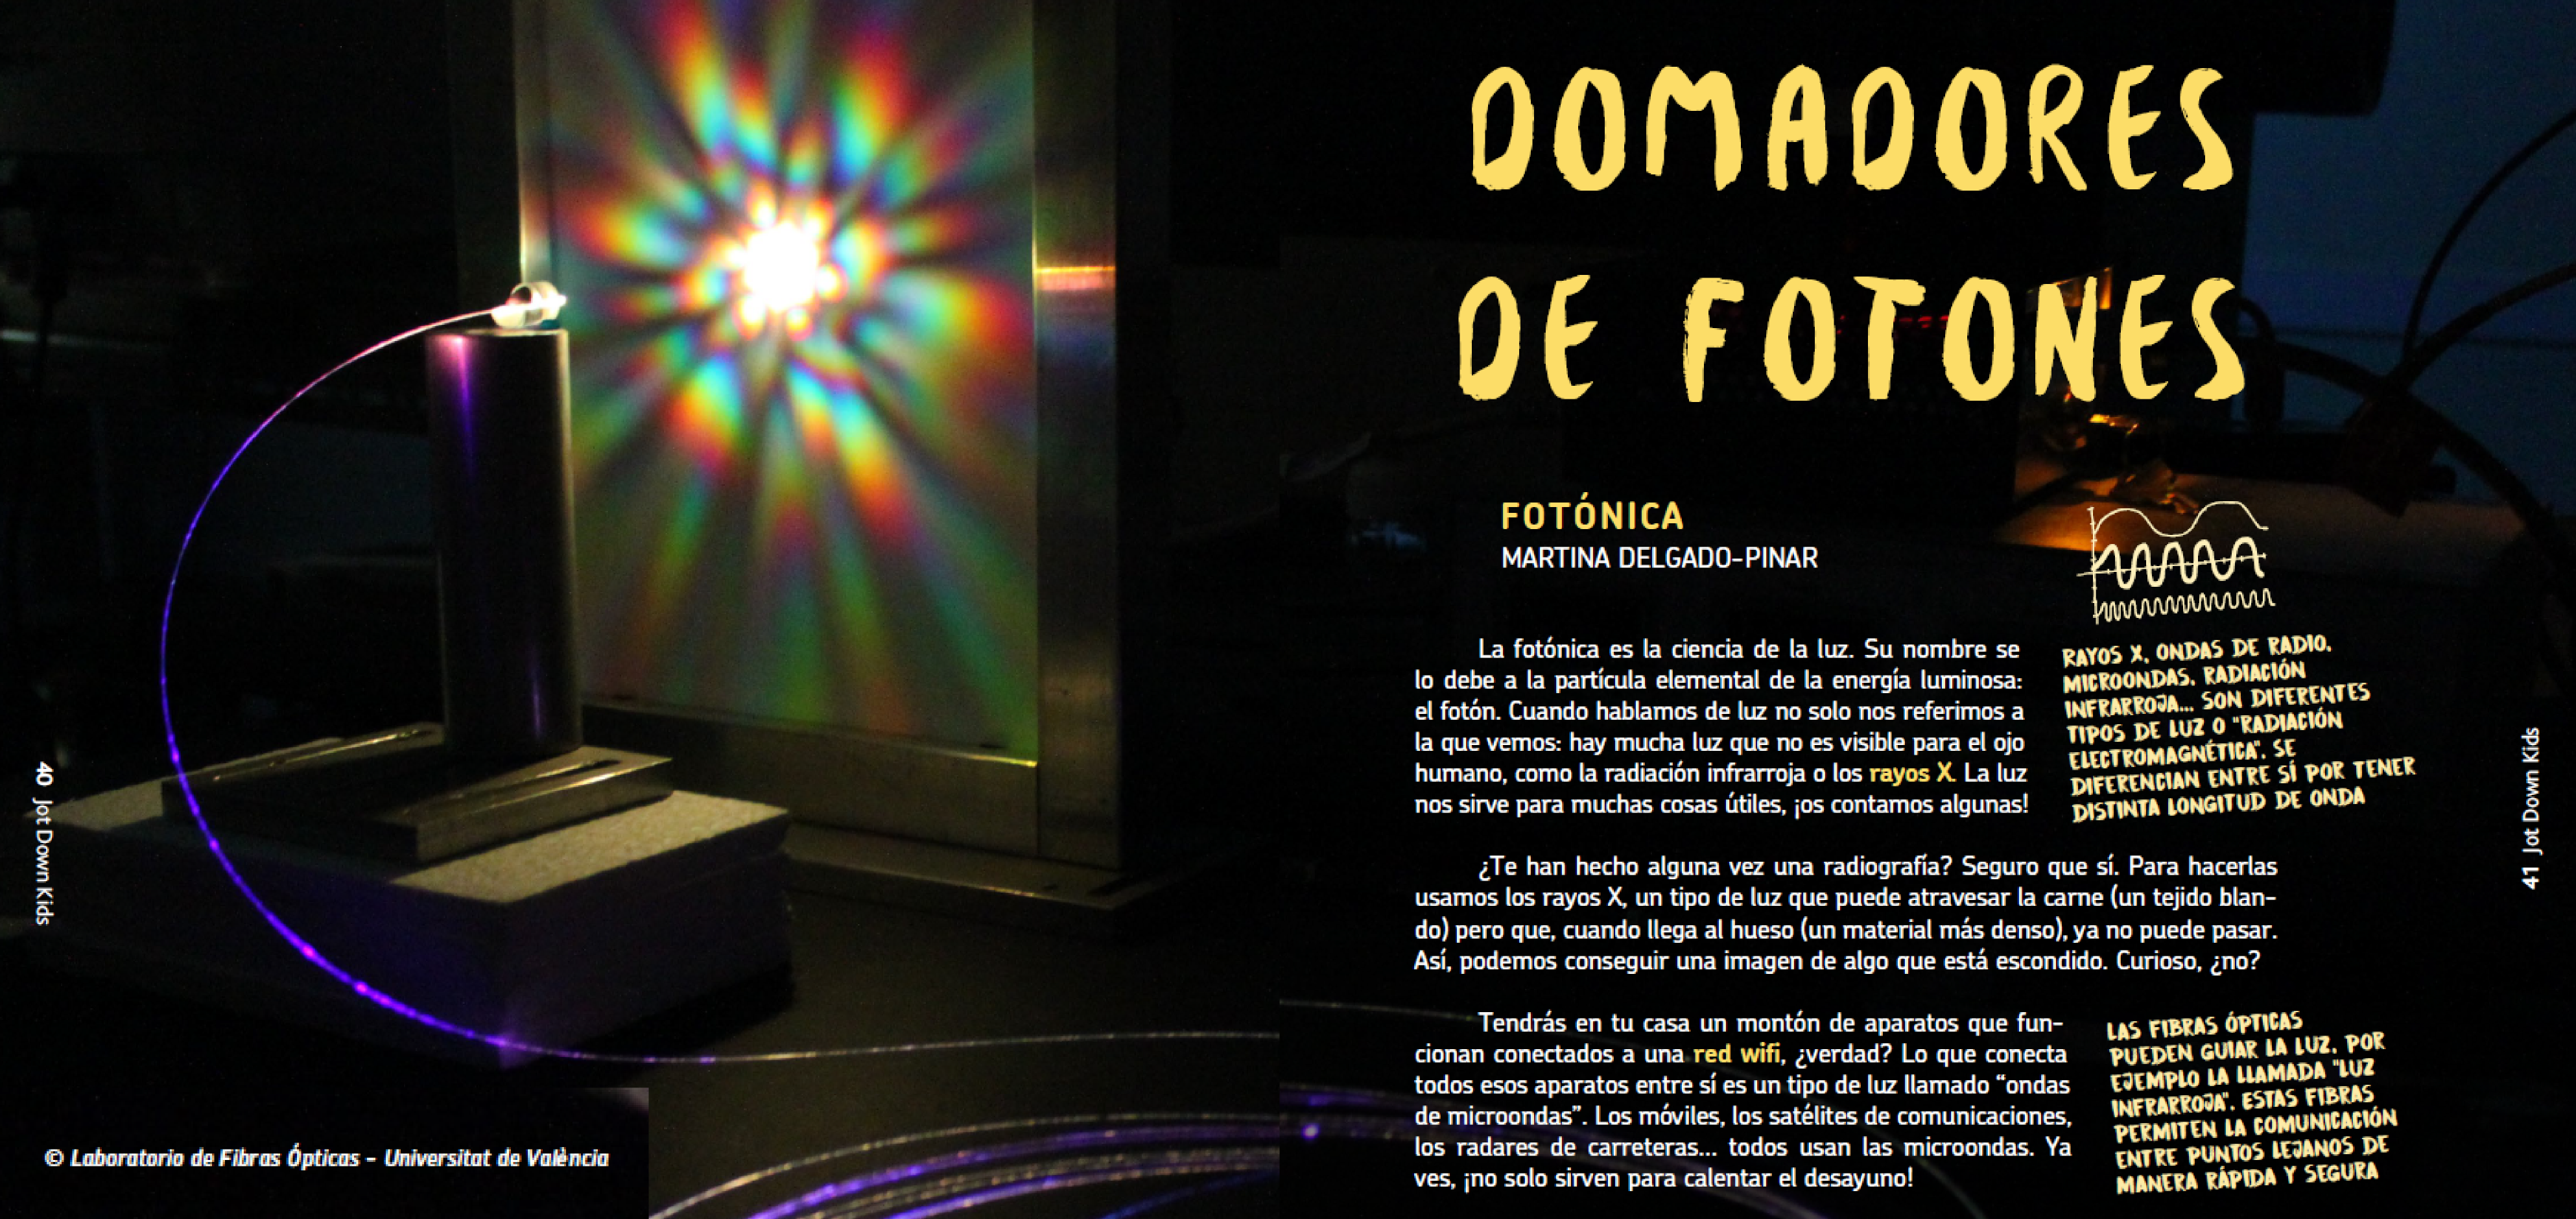 3dccb787b The journal Jot Down Kids, addressed to kids and teenagers, includes an  article about Photonics entitled 'Domadores de fotones', at its latest  number ...